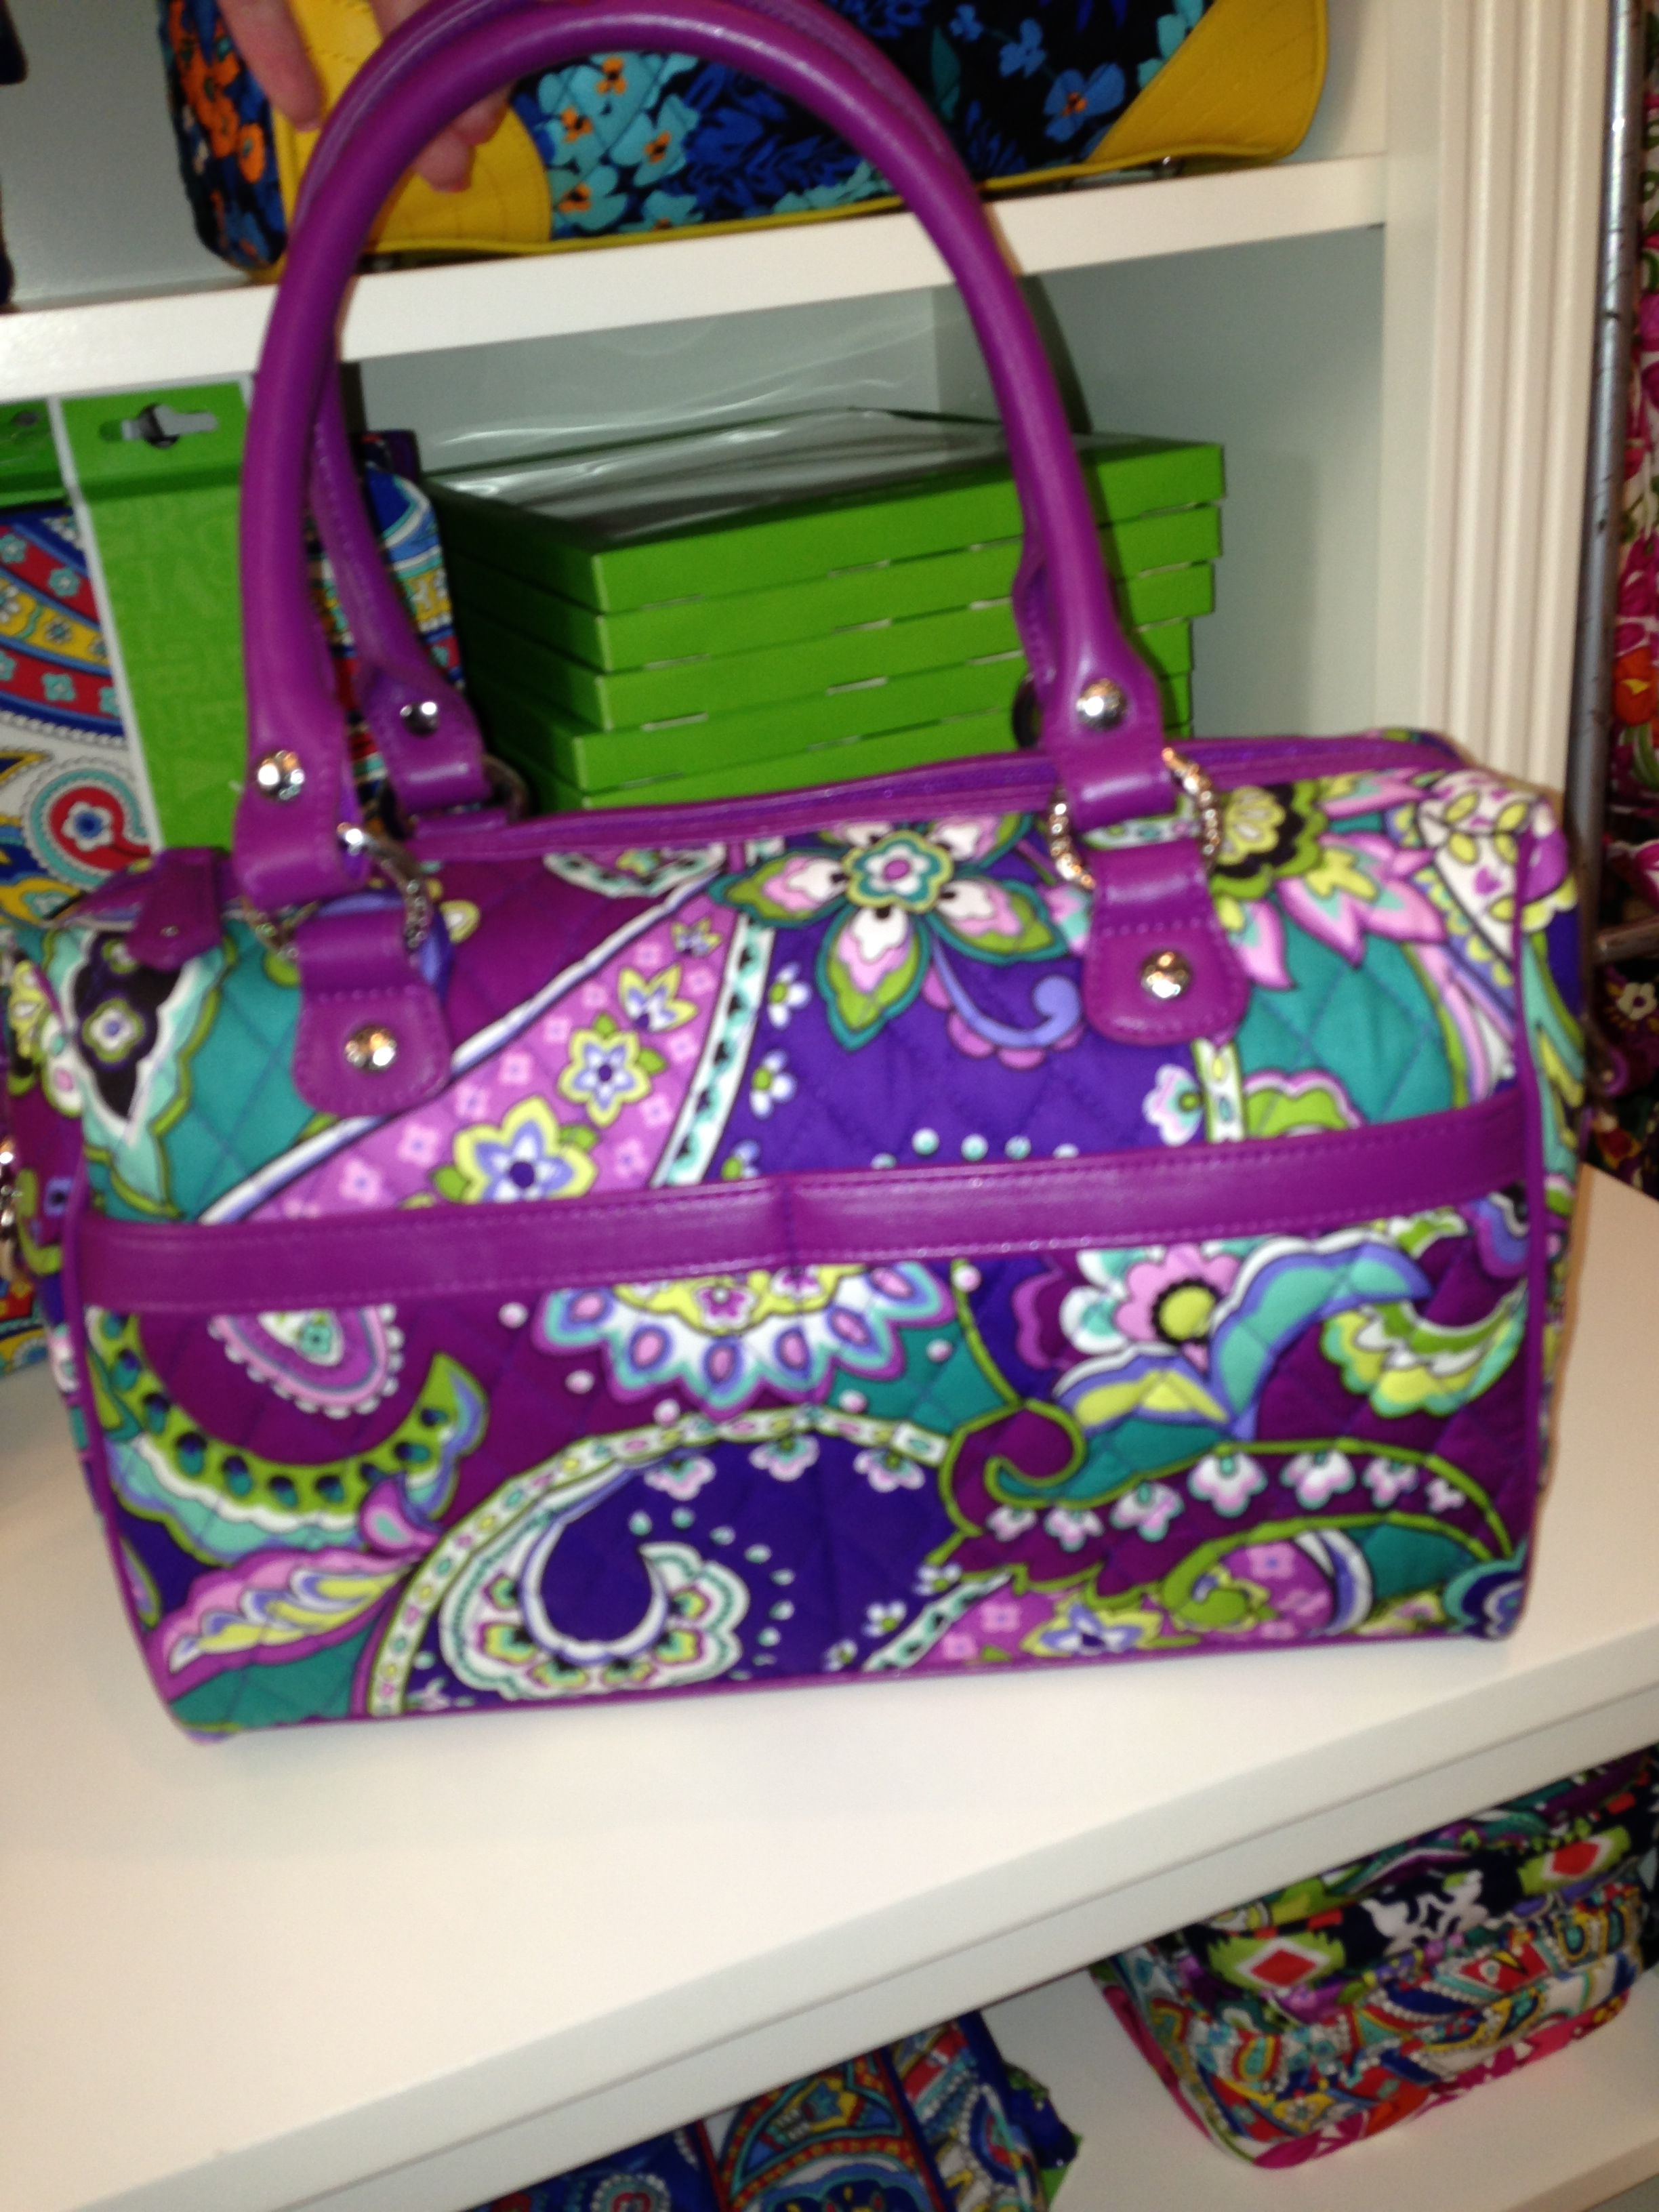 e2e1bf553cd3 LOVE this Vera Bradley bag!!!